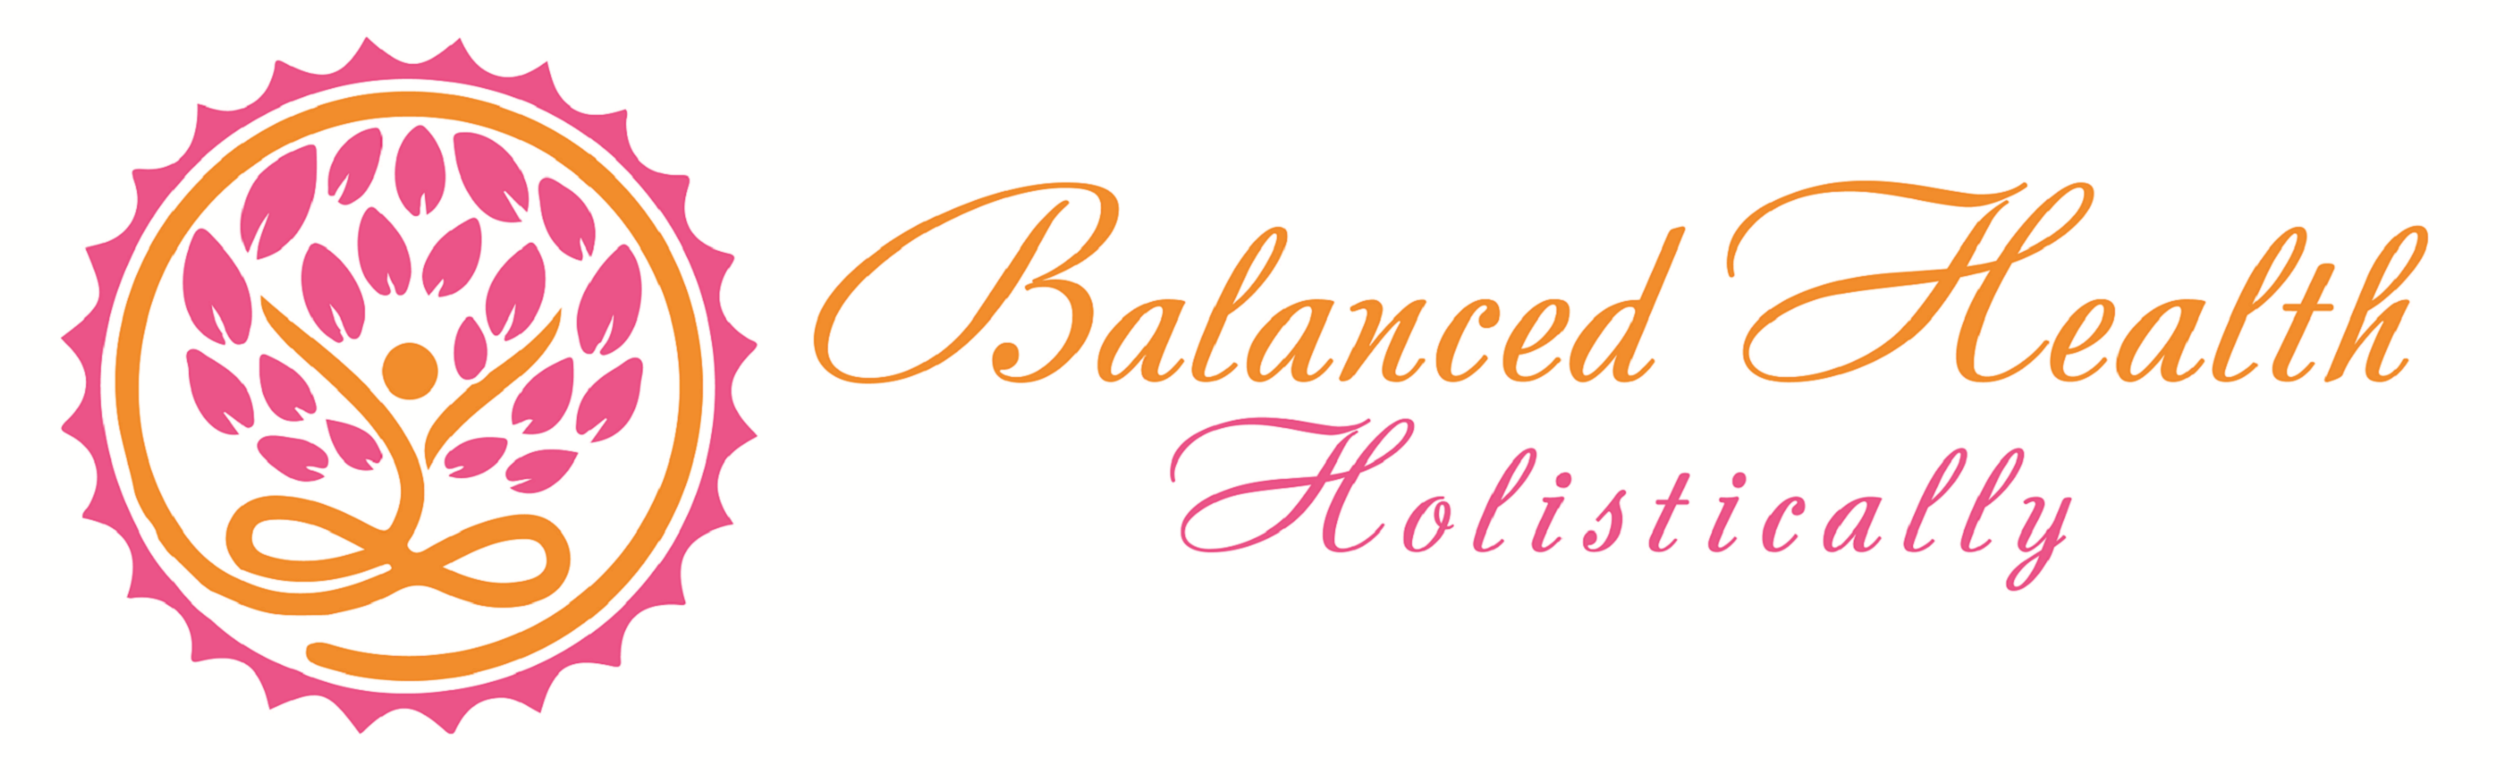 Balanced_Health_Holistically_R3011-1-2700x1000-v3.png